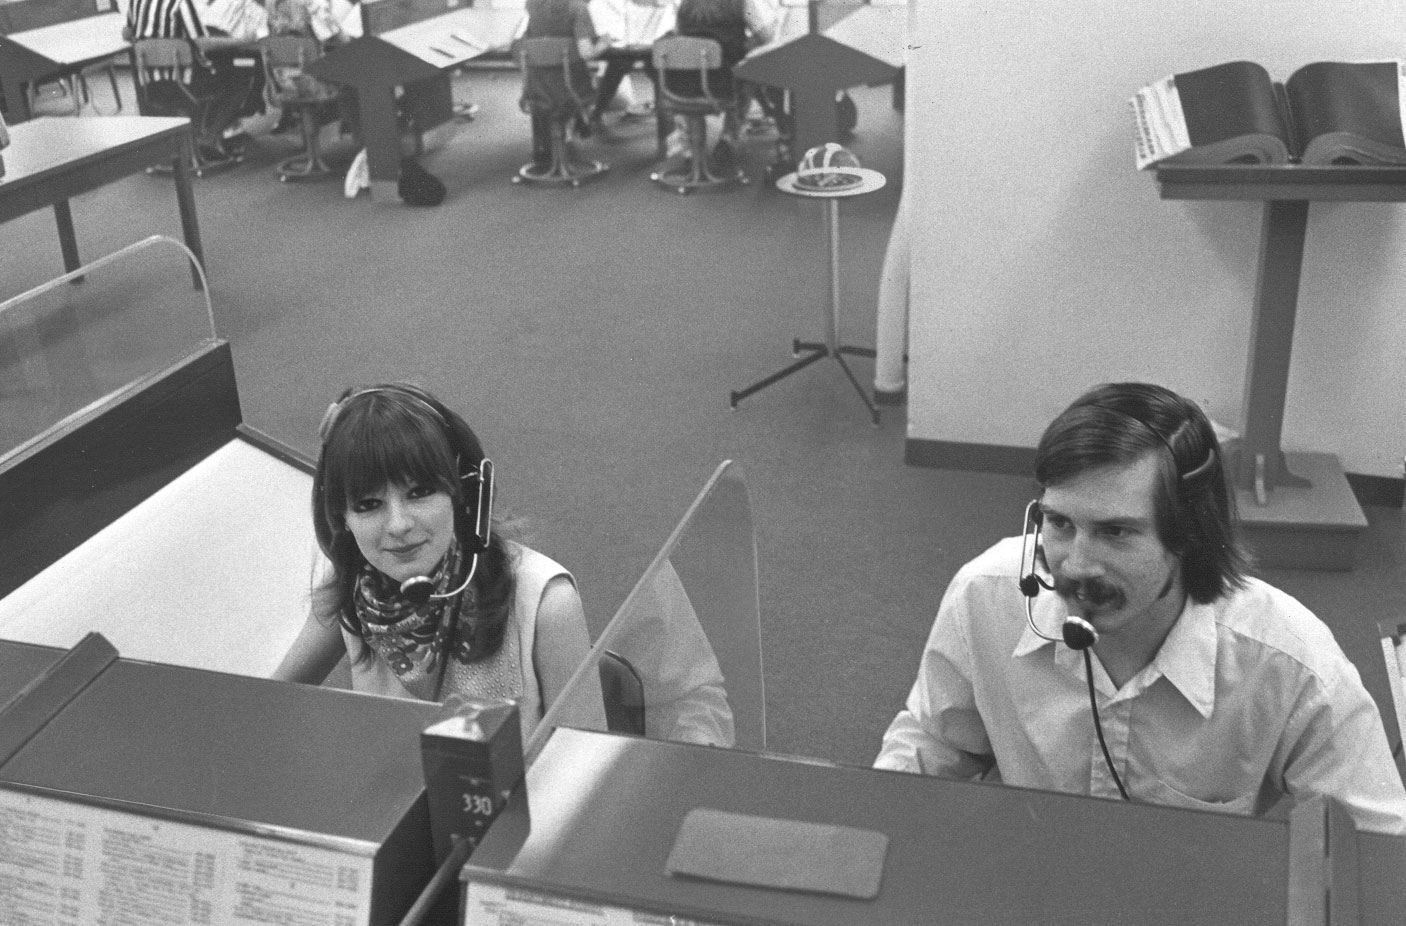 014_telephone operators in the 70s